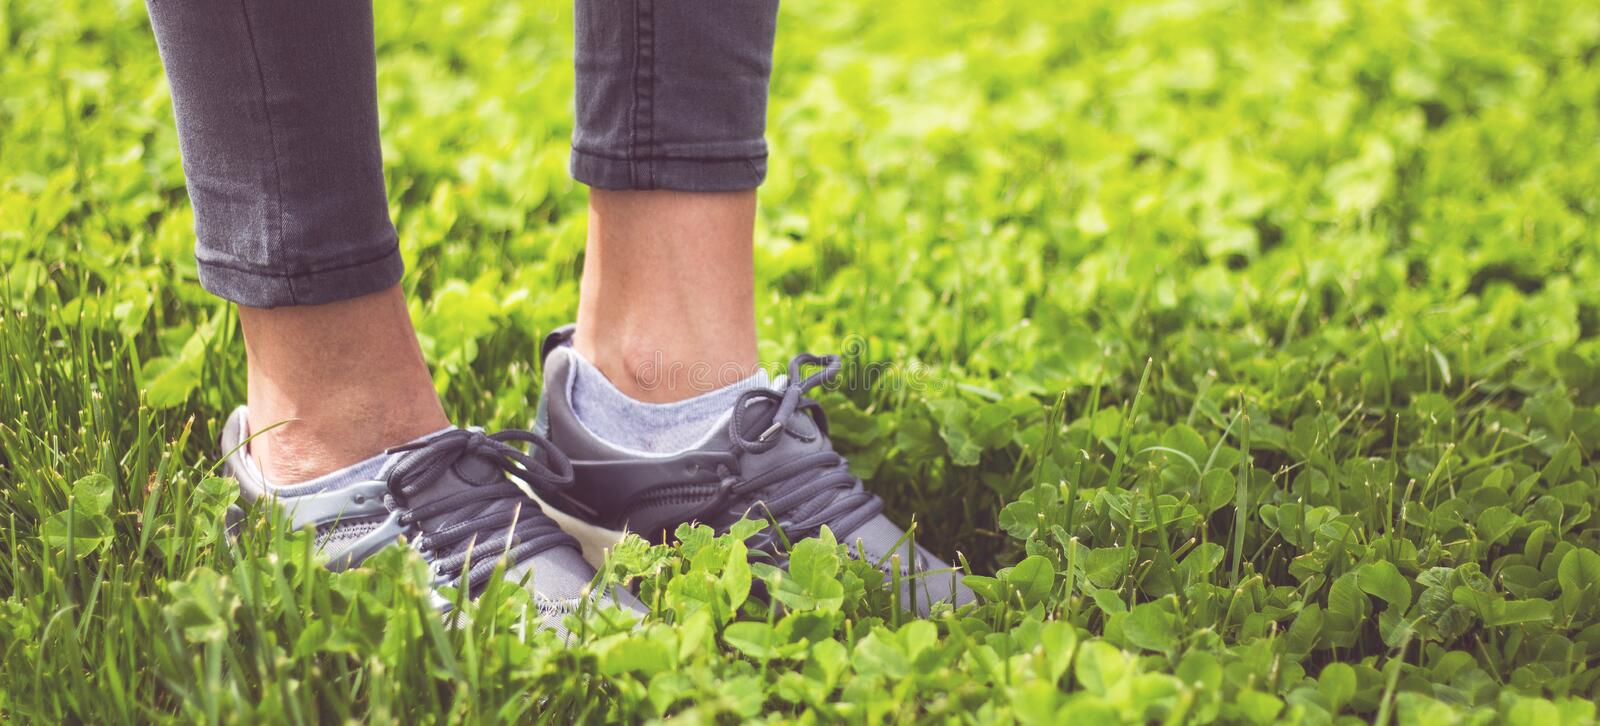 Young girl feet in sport shoes sneakers on green grass on meadow. In spring. Lifestyle and fitness stock photo